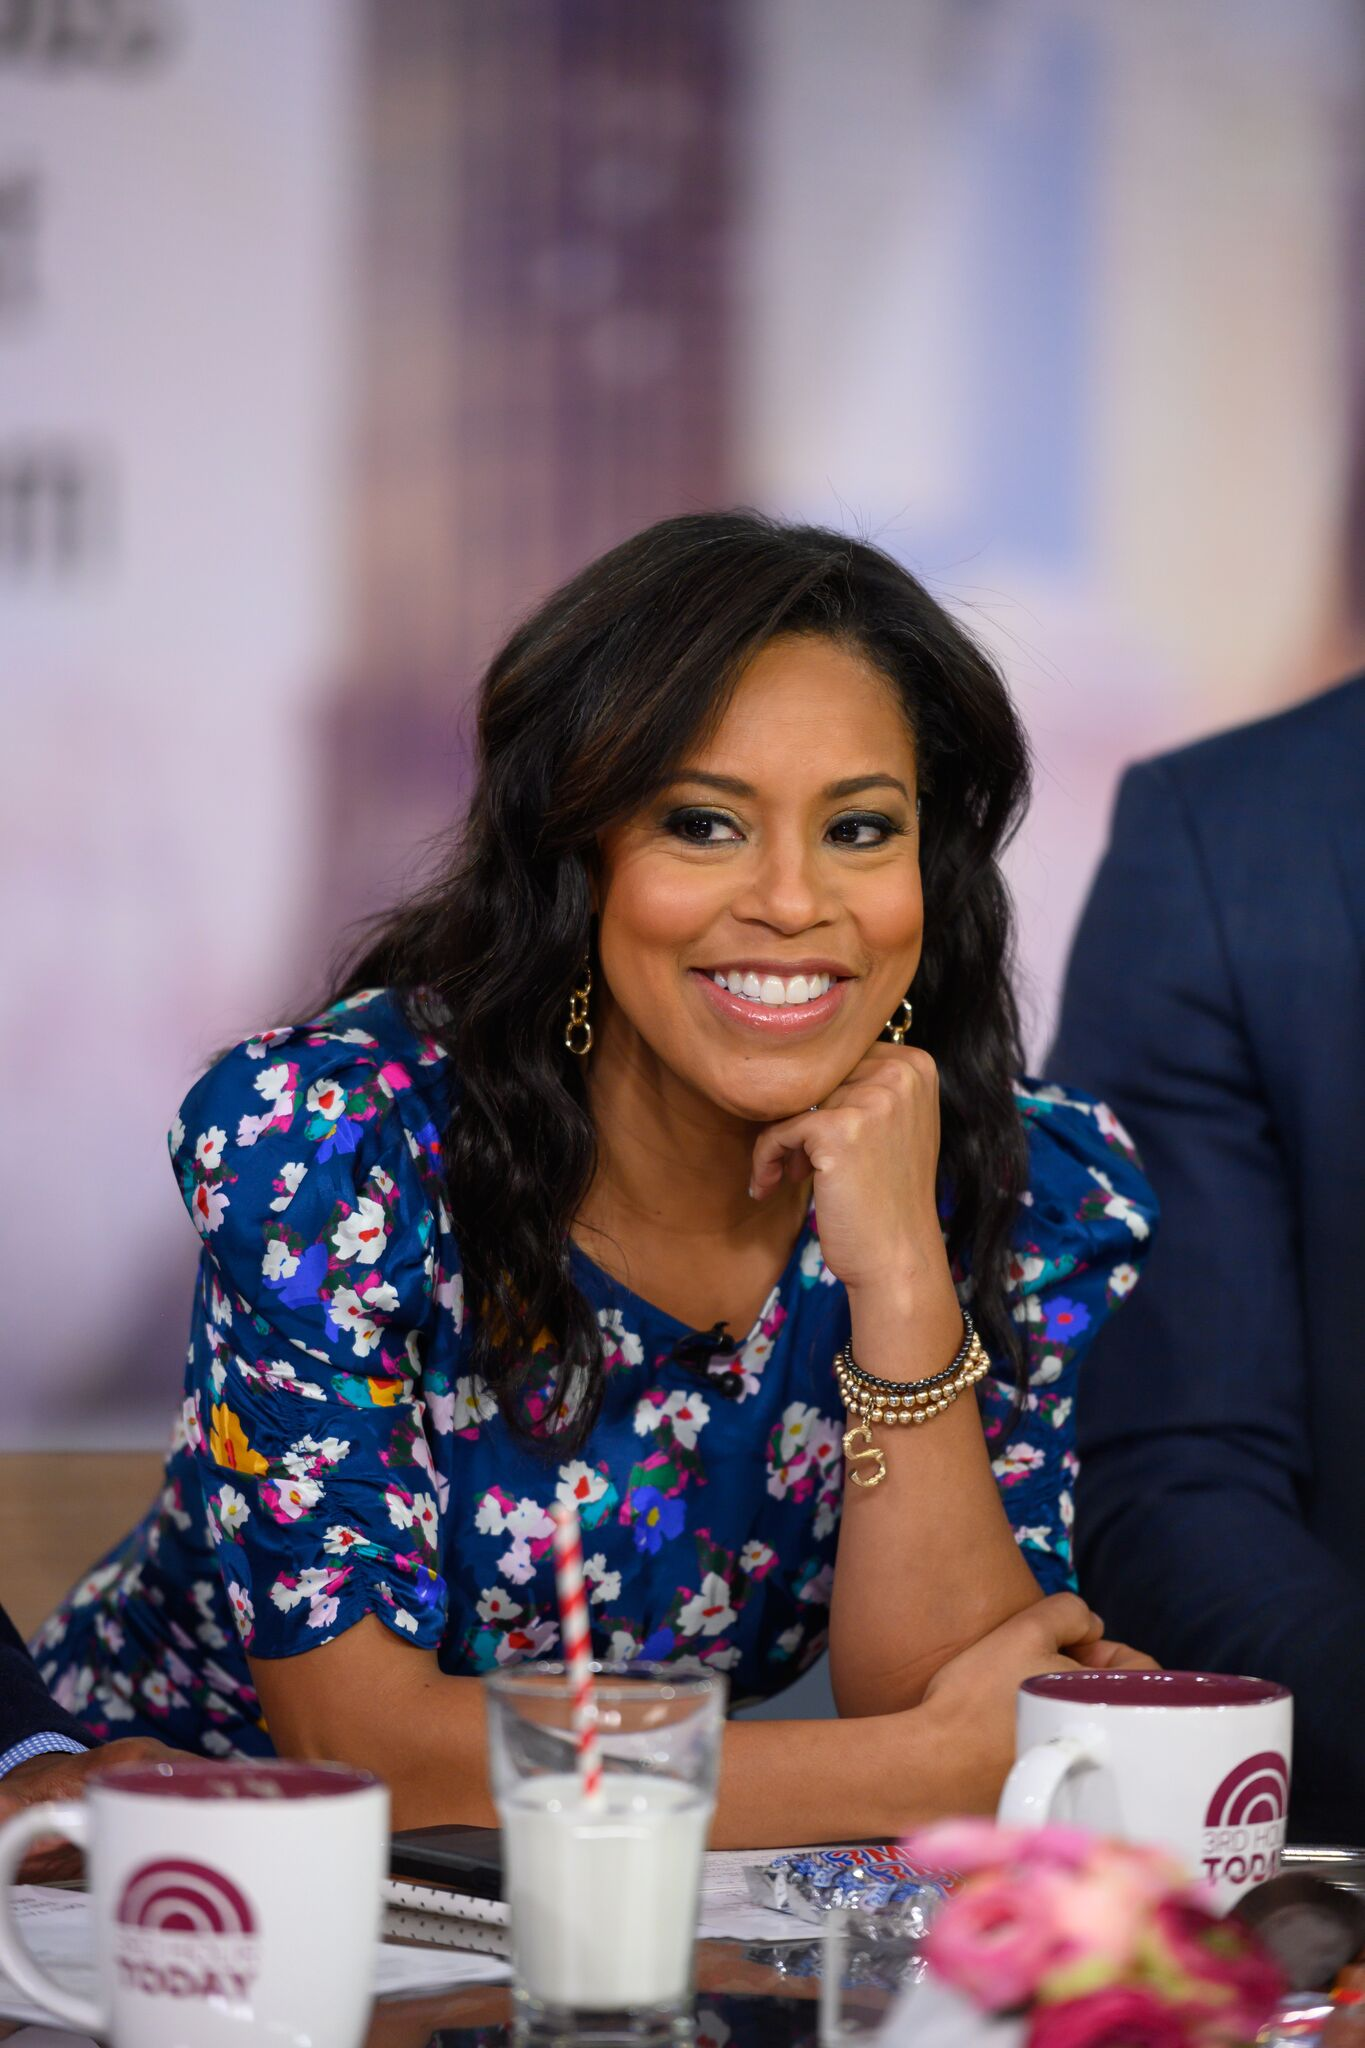 Sheinelle Jones on Wednesday, January 22, 2020   Photo: Getty Images